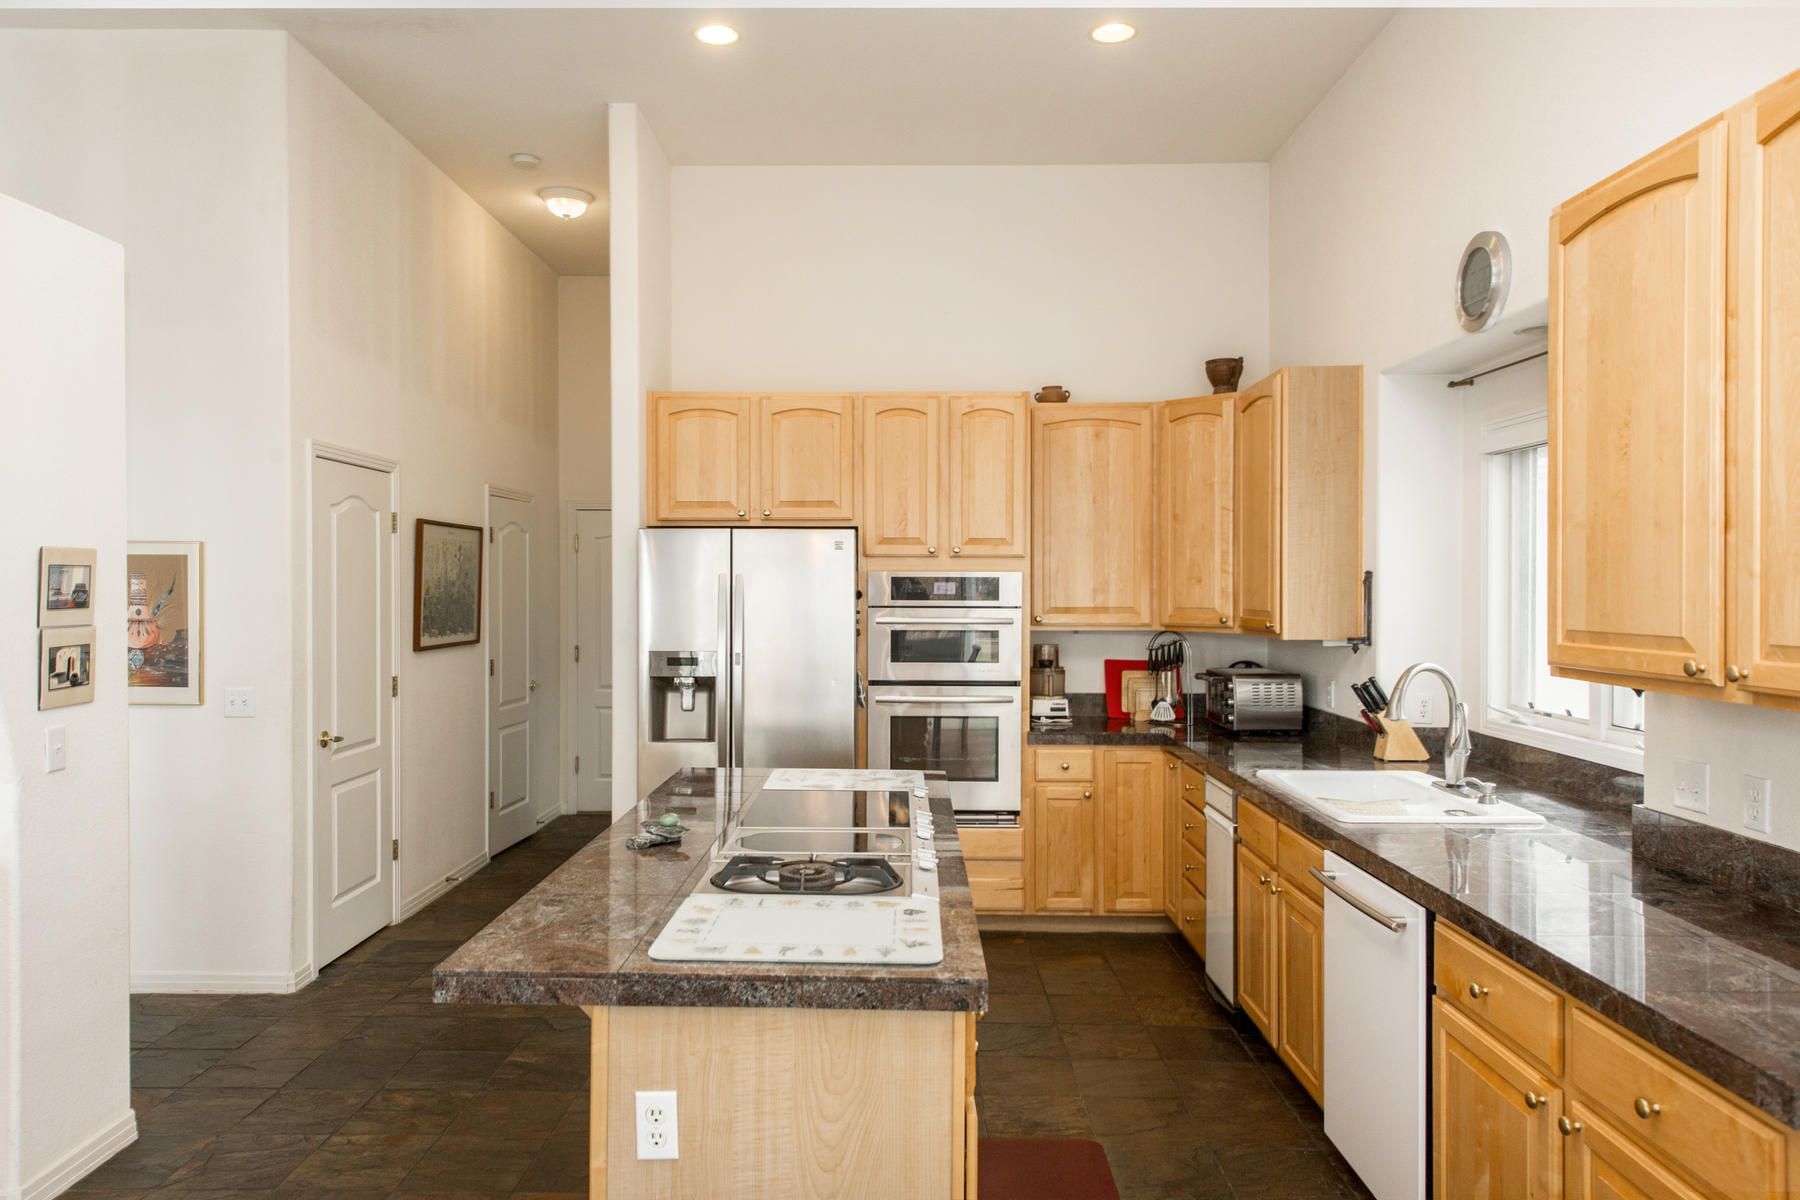 Additional photo for property listing at 13969 E Maplewood Pl 13969 E Maplewood Pl Centennial, Colorado 80111 United States